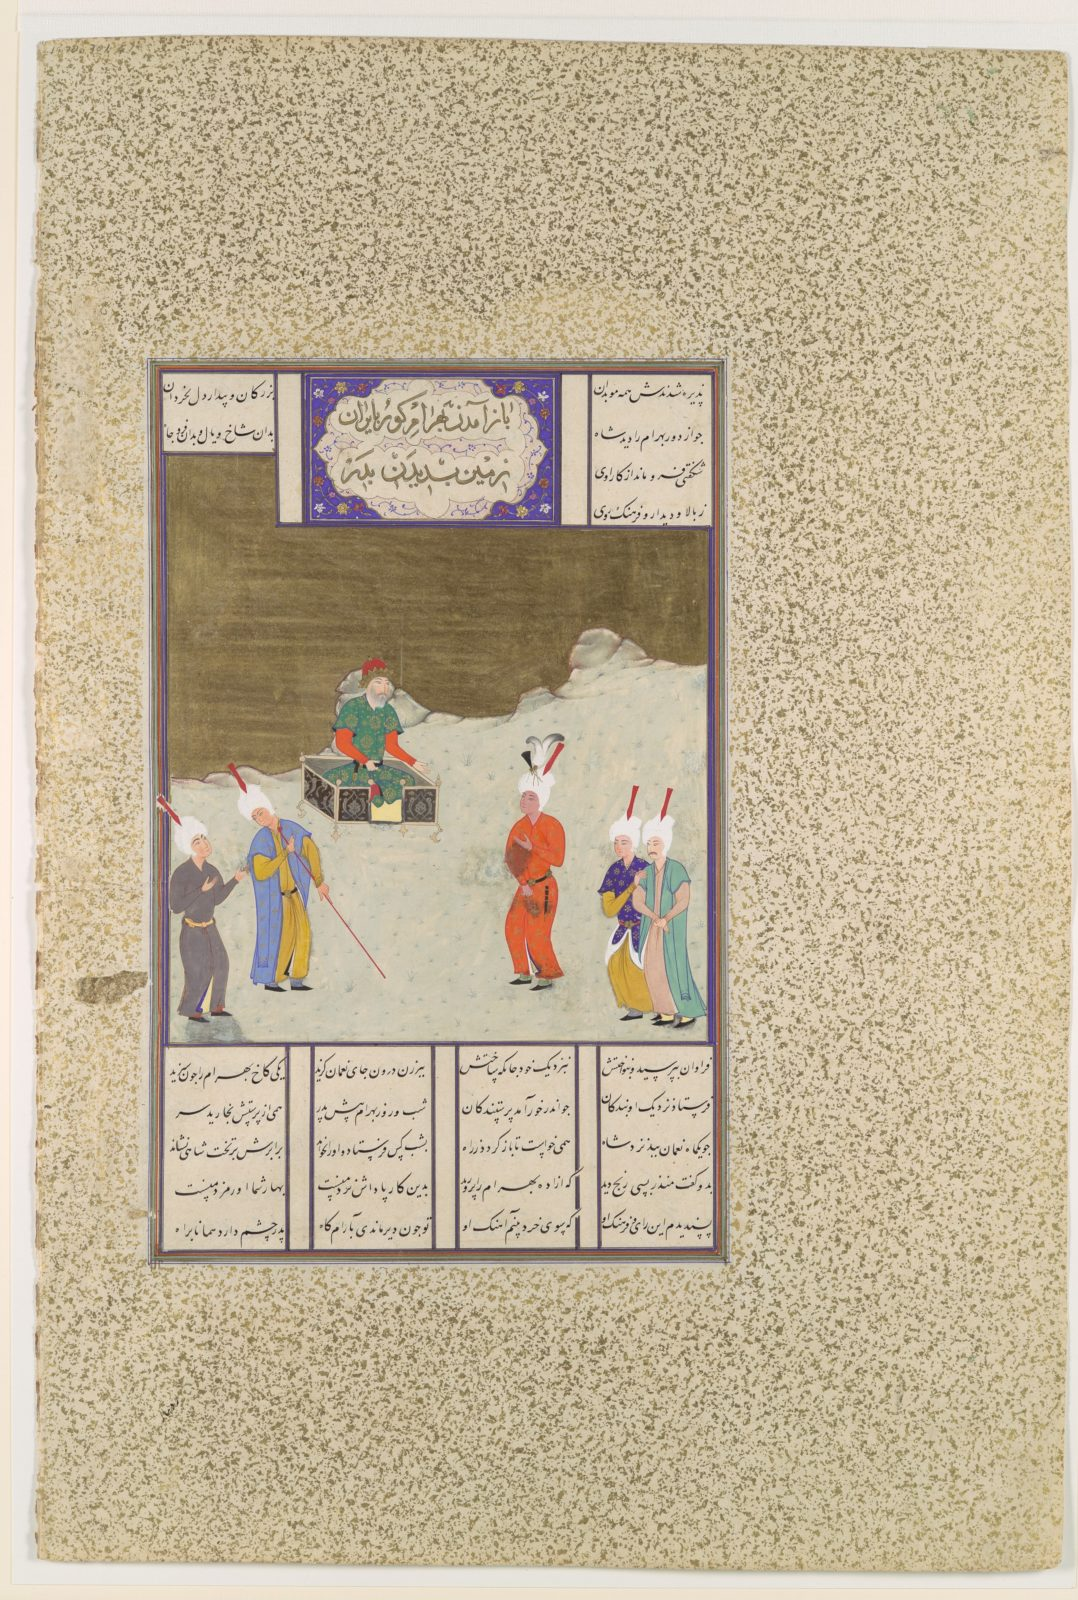 """Bahrum Gur Before His Father, Yazdigird I"", Folio 551v from the Shahnama (Book of Kings) of Shah Tahmasp"